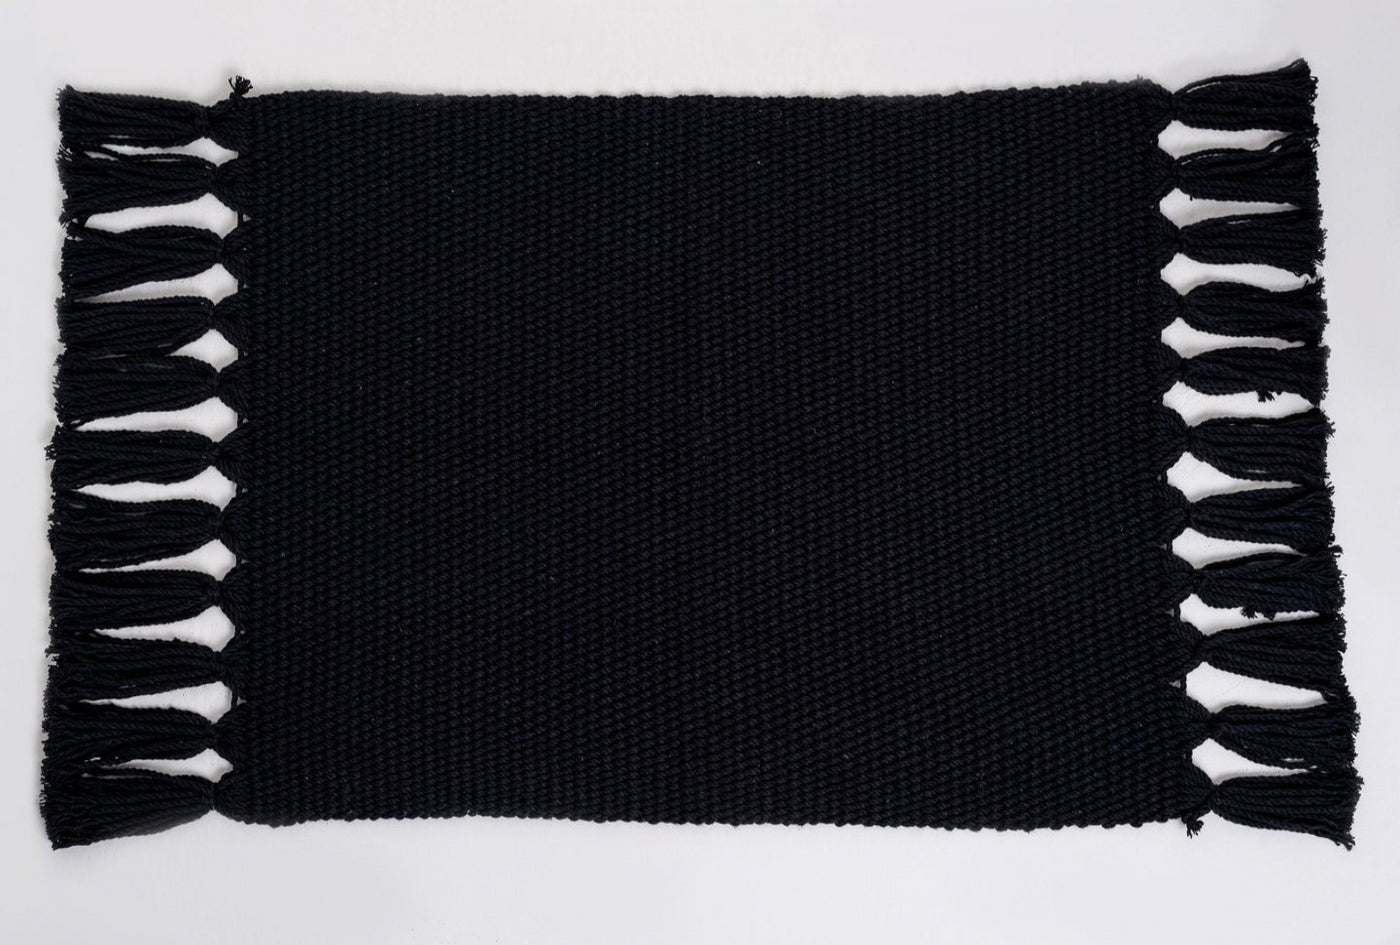 Black Handmade Cotton Placemats Set of 6 Formal Casual Decor